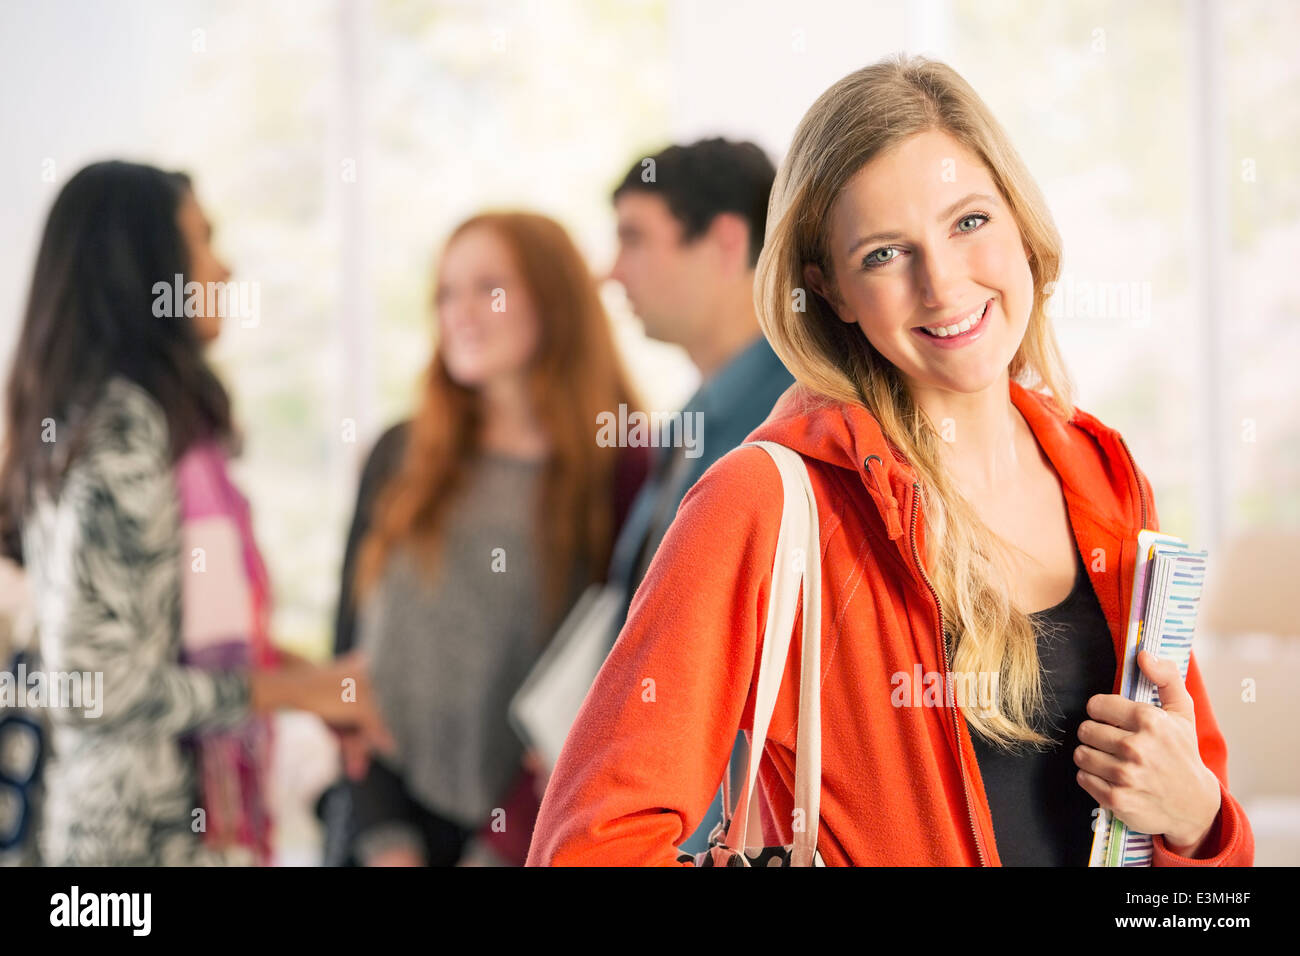 Portrait of smiling college student - Stock Image